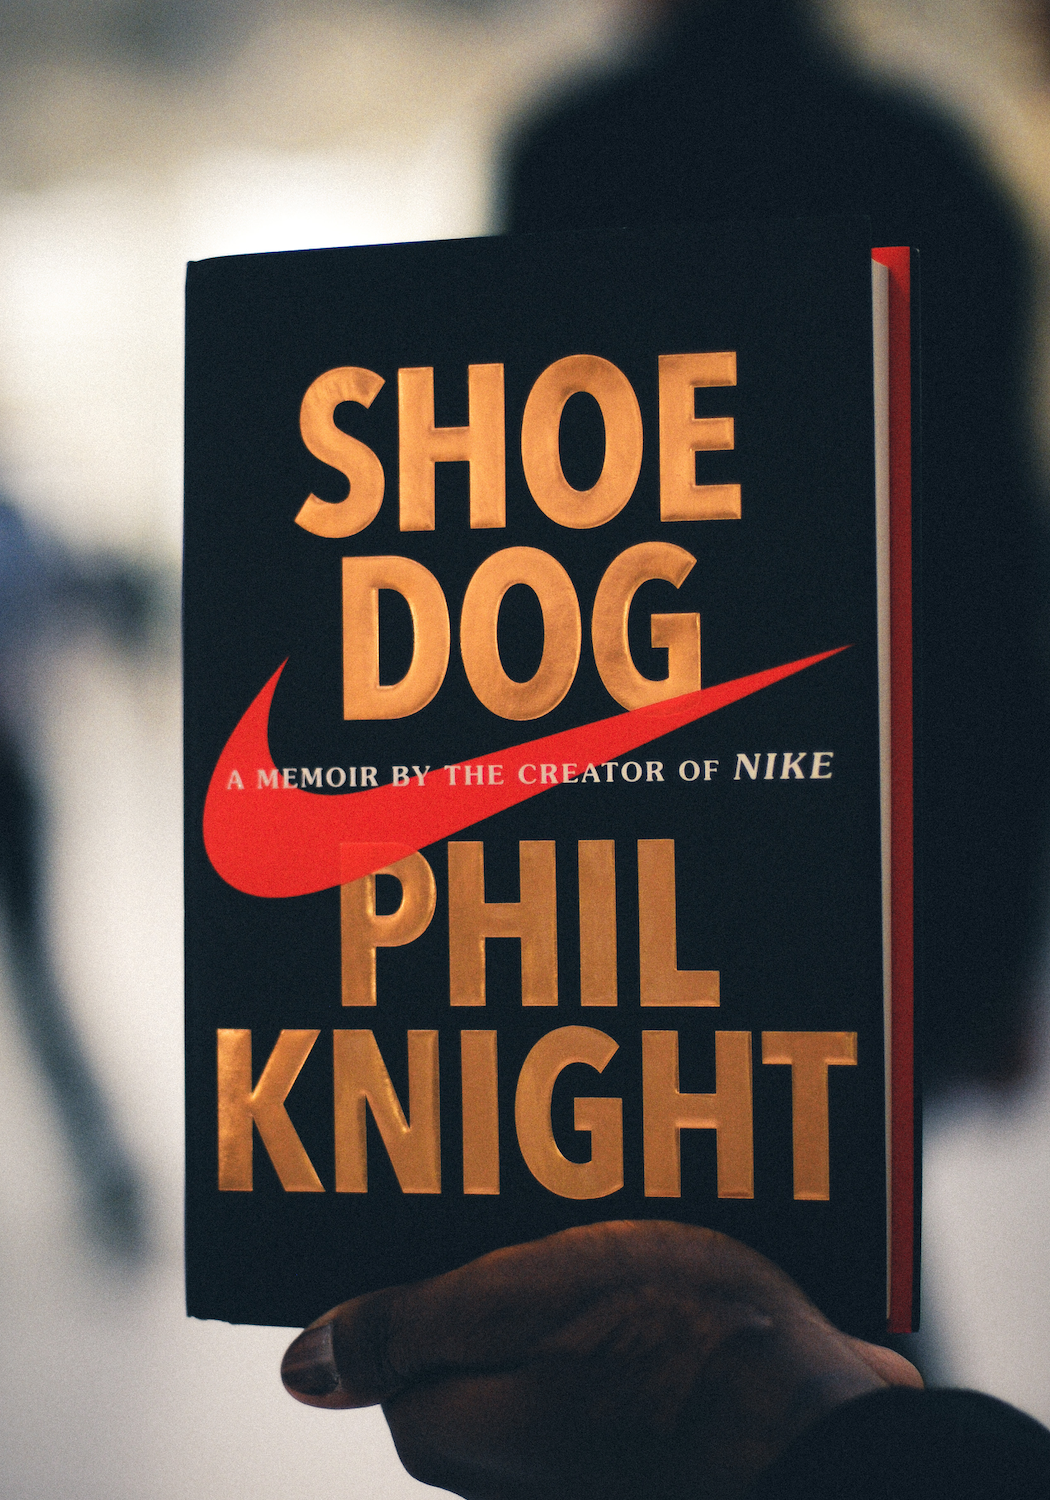 Shoe Dog - Phil Knight - A majority of books I read are written by key people in an industry I work or admire. Shoe Dog was a great read cause it's told in the first person by Phill Knight and the trials and tribulations it took to build Nike.